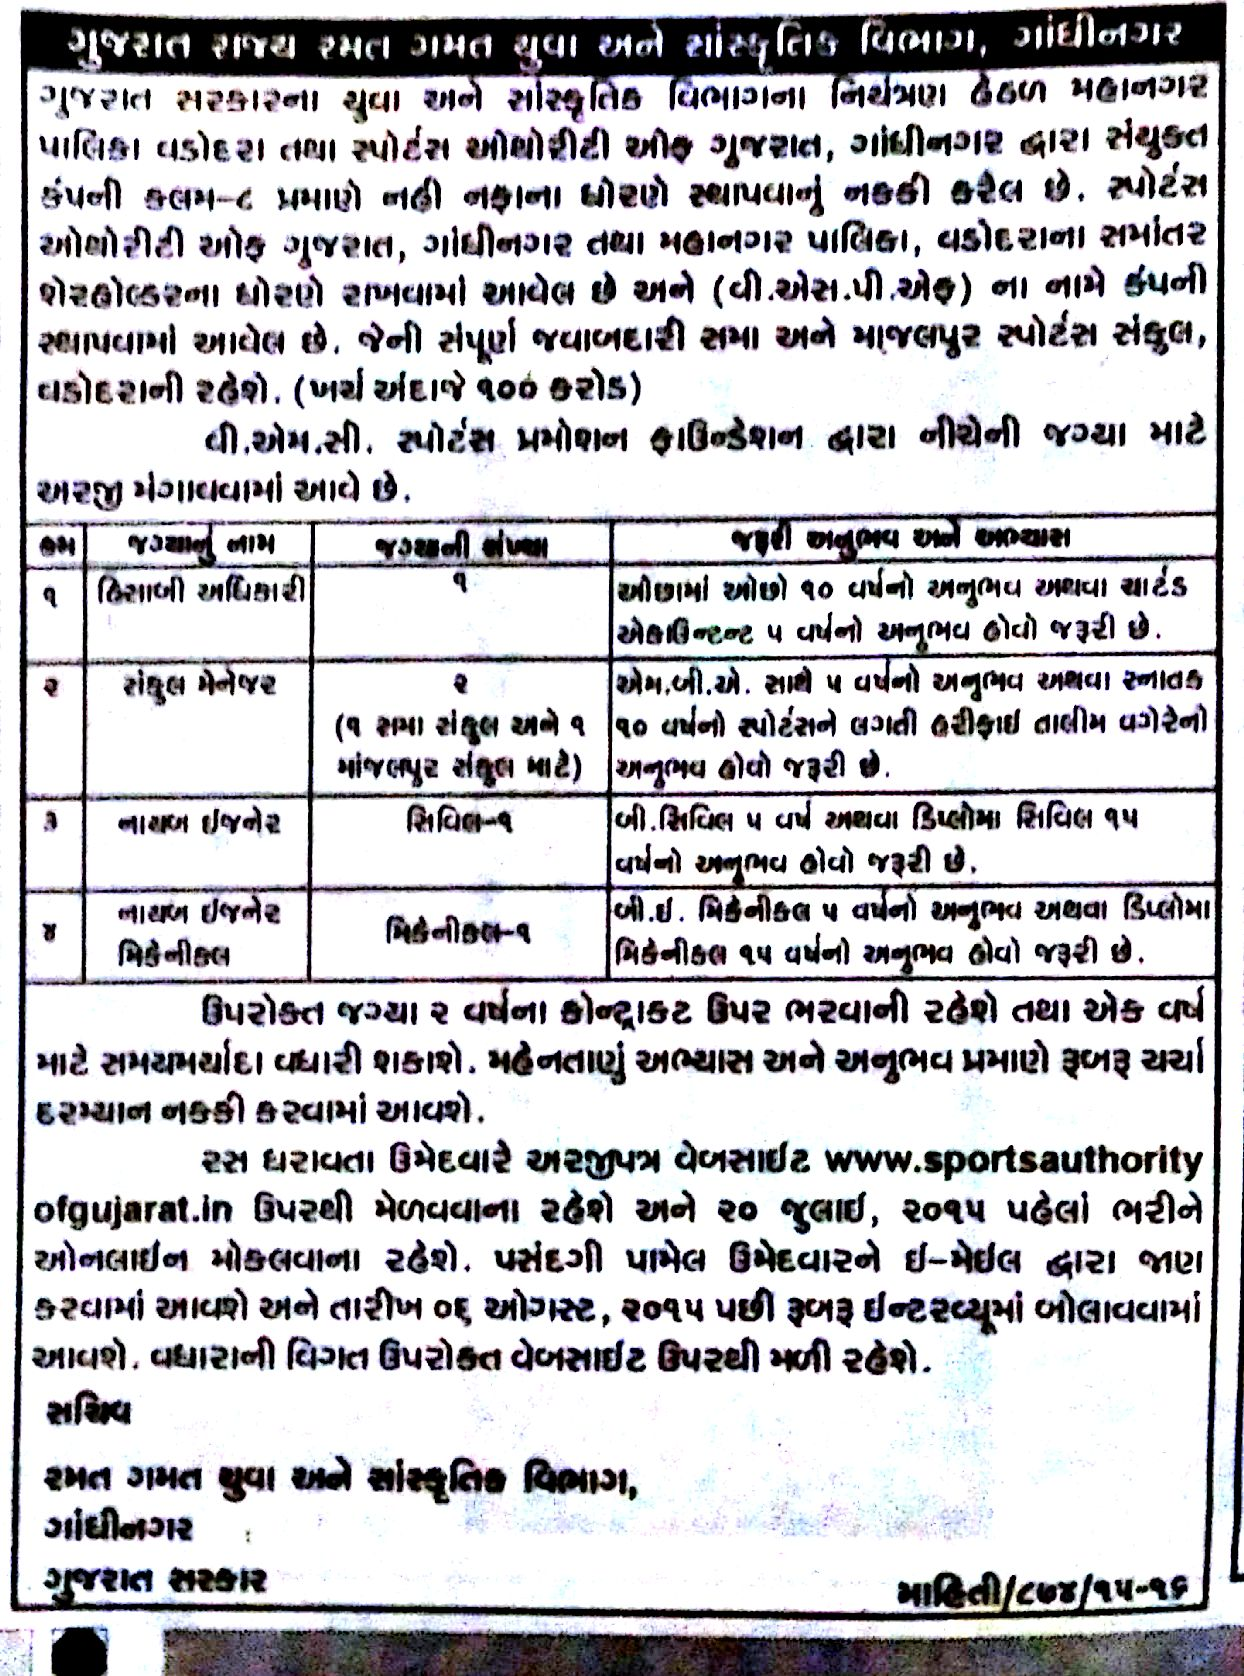 civil mechanical engineer jobs sports authority of gujarat sportsauthorityofgujarat